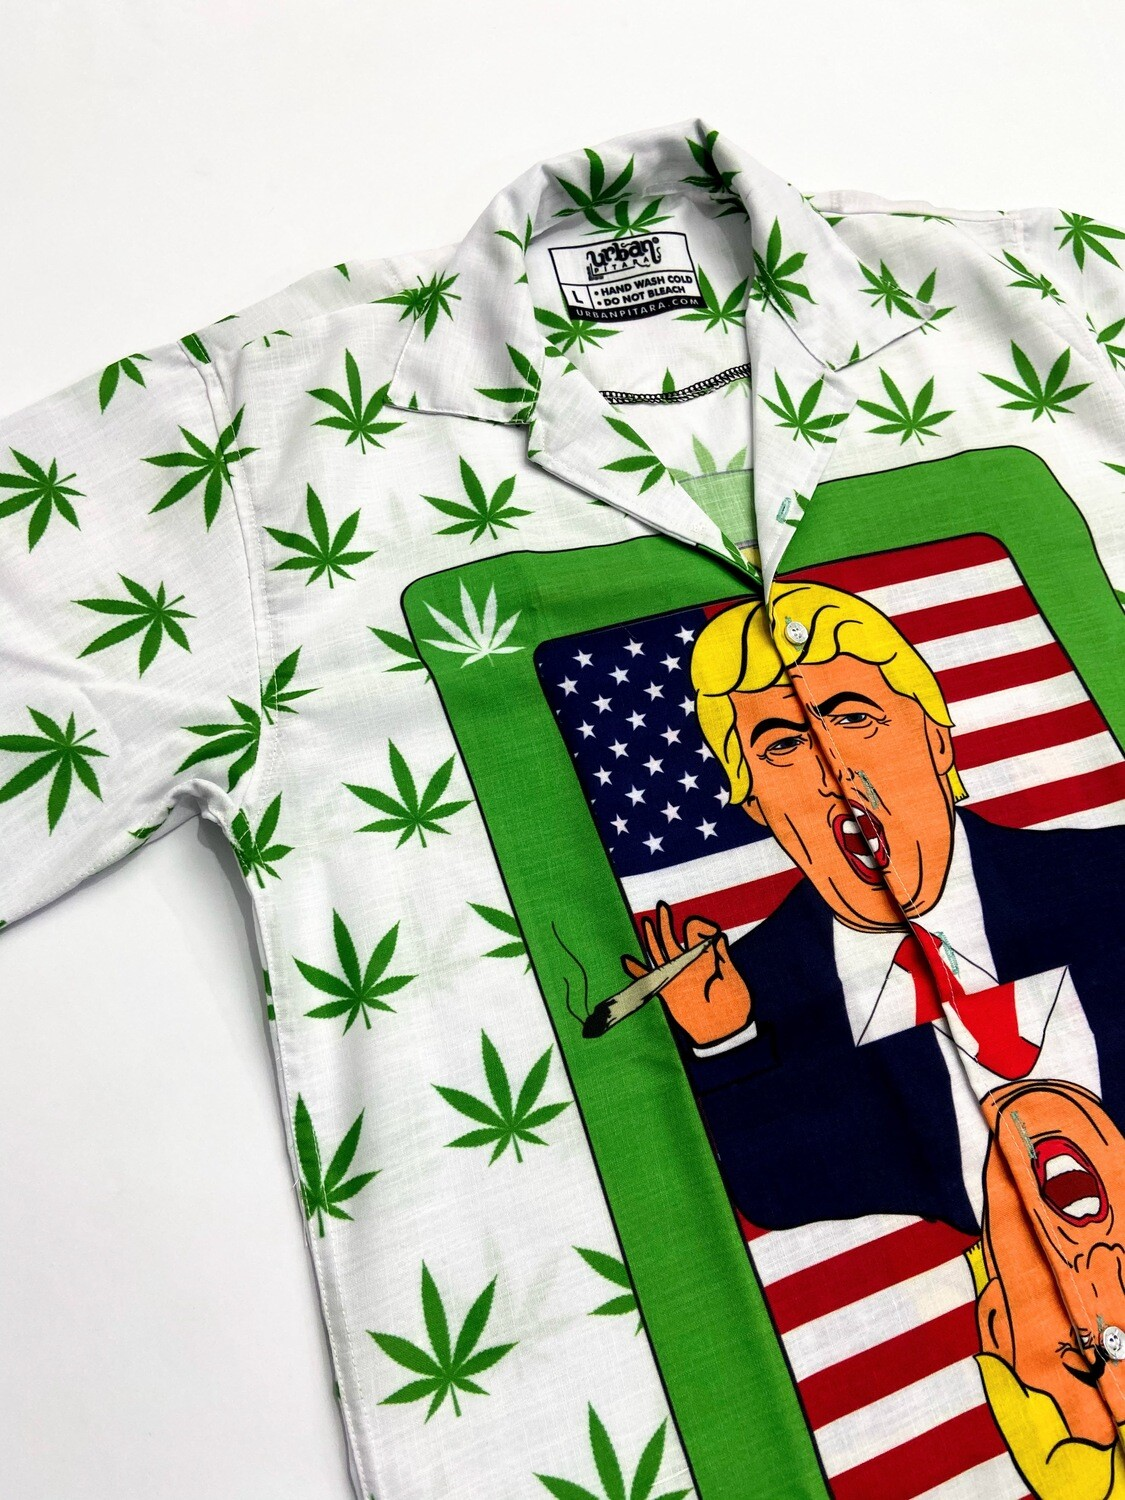 Trump Stoned Buttoned Shirt